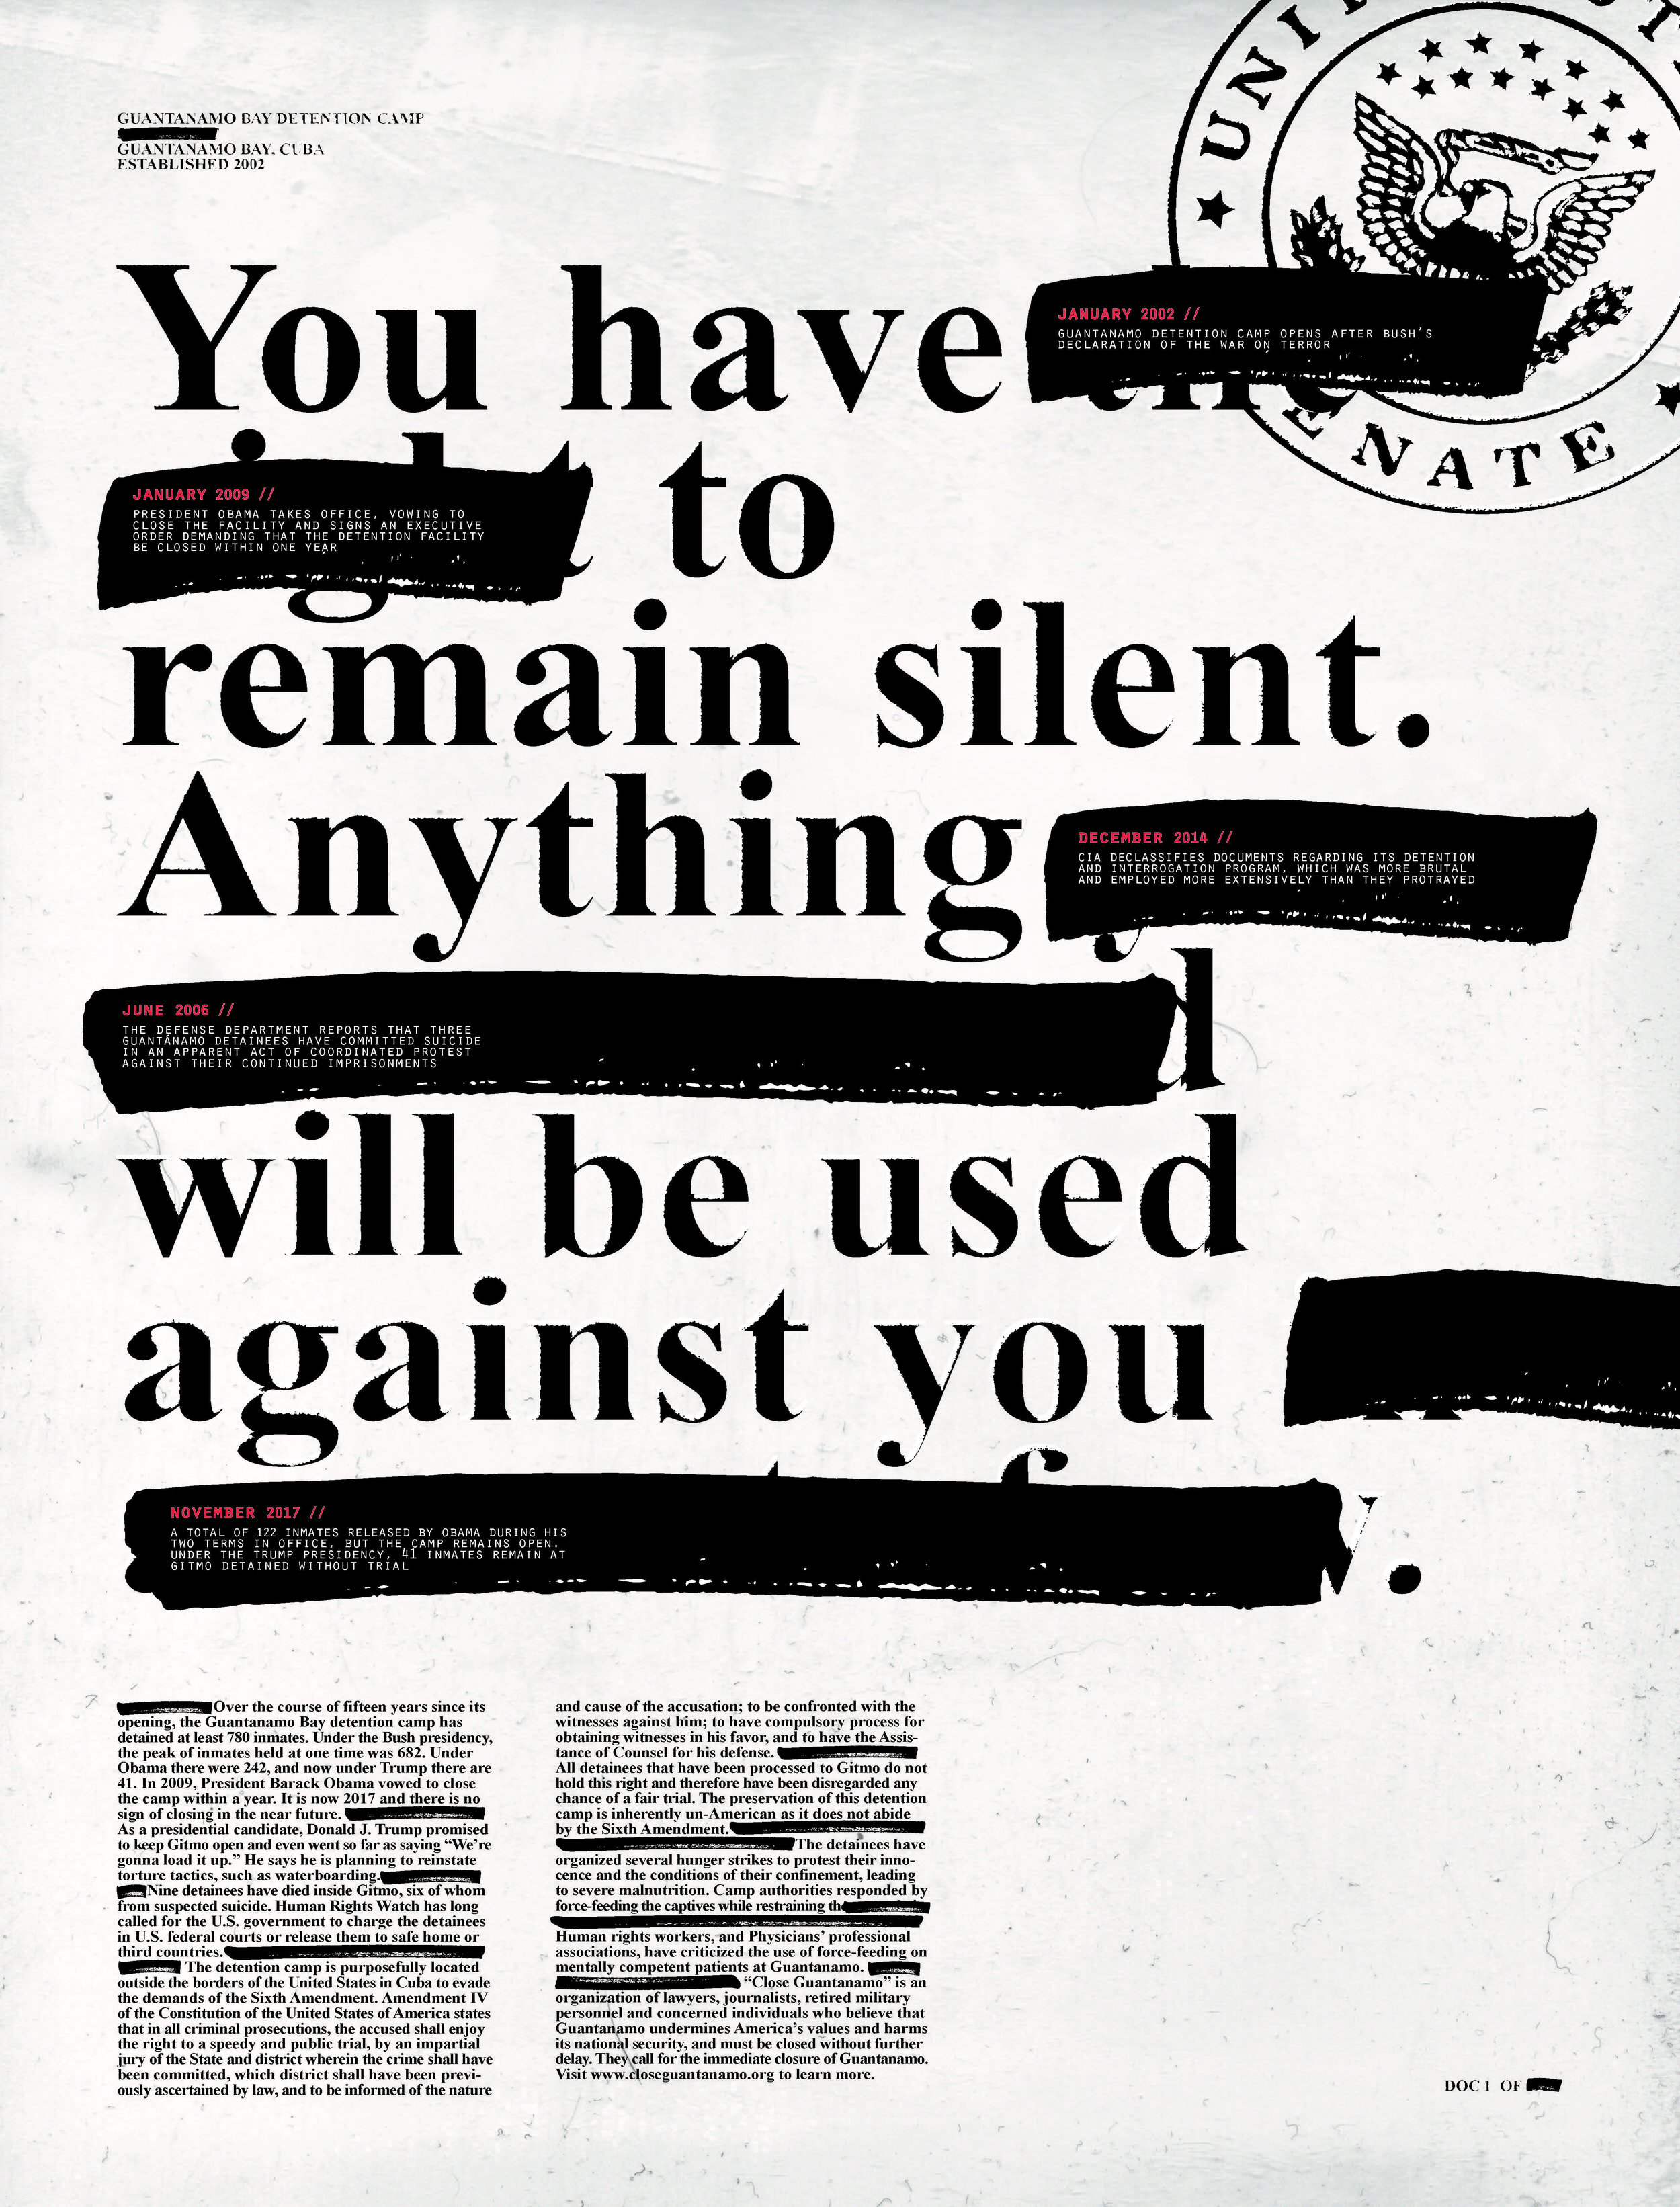 Design 376, University of Washington   Poster advocating for the inmates at Guantanamo Bay Detention Camp